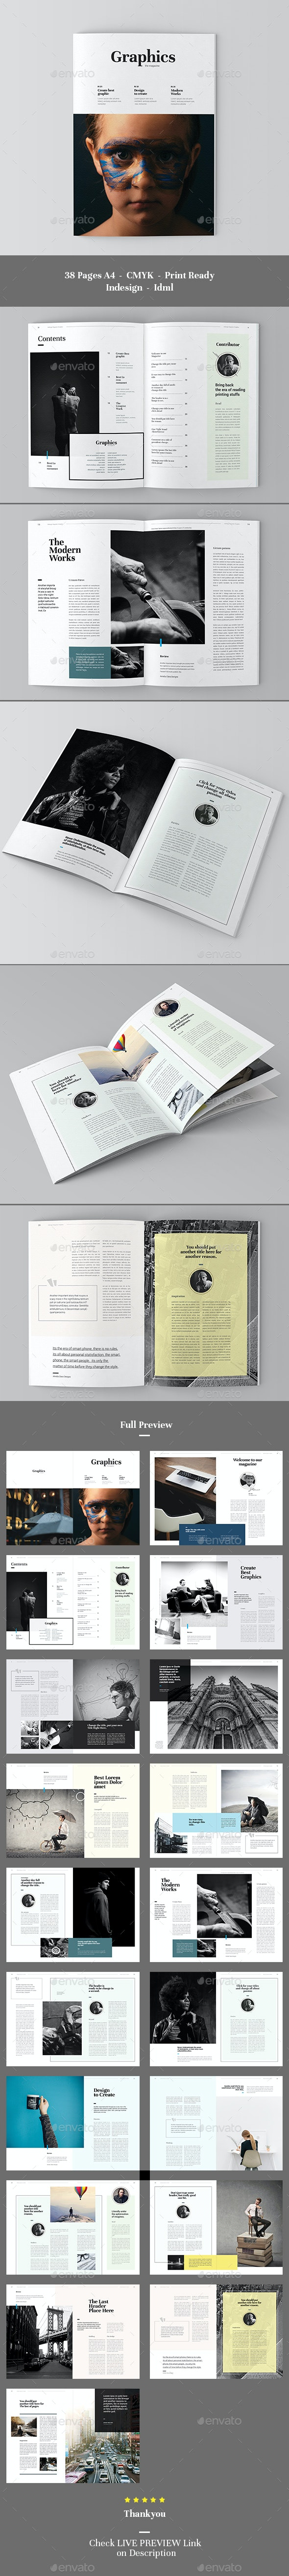 Graphics Magazine - Magazines Print Templates